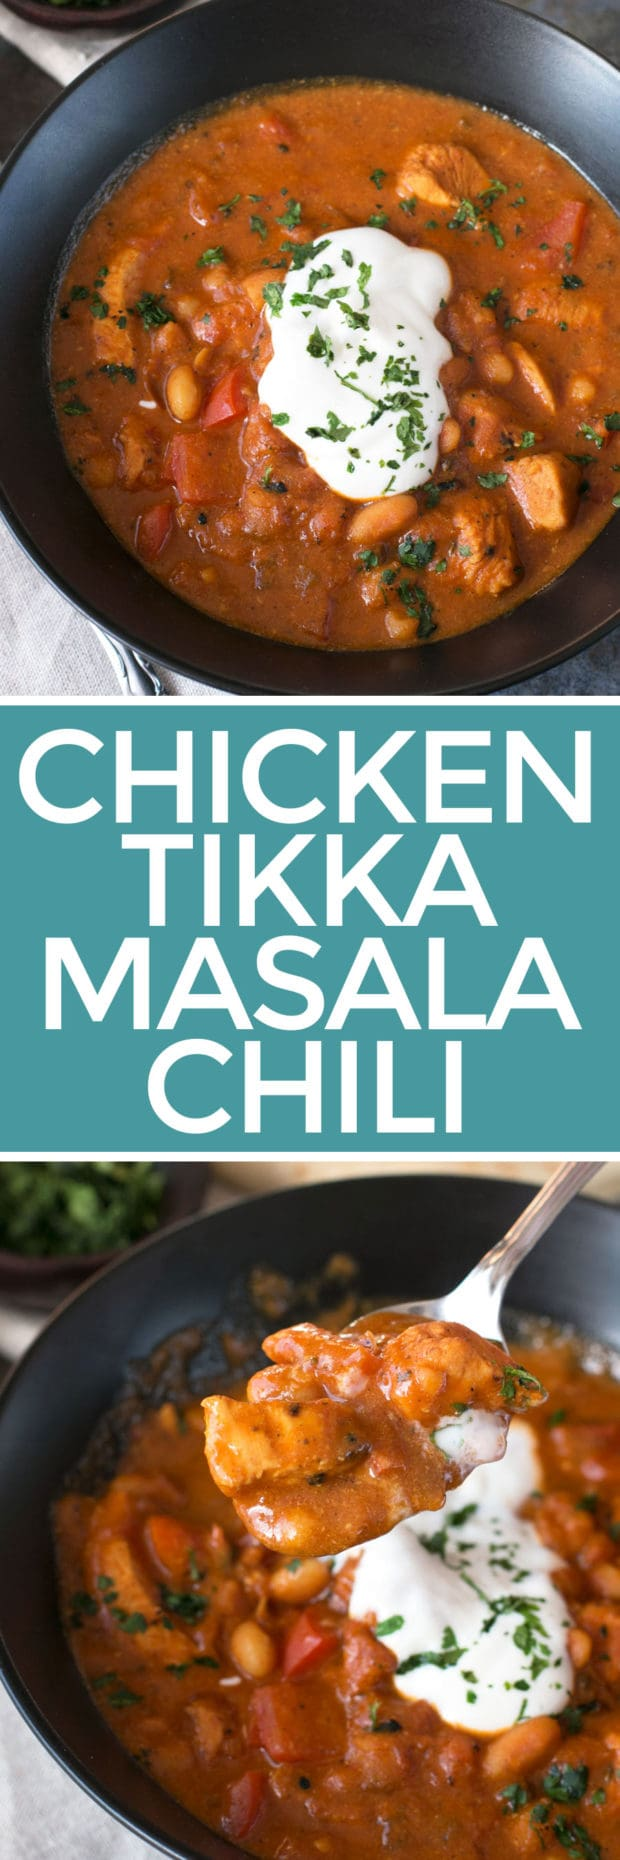 Tikka Masala Chicken Chili | cakenknife.com #soup #dinner #recipe